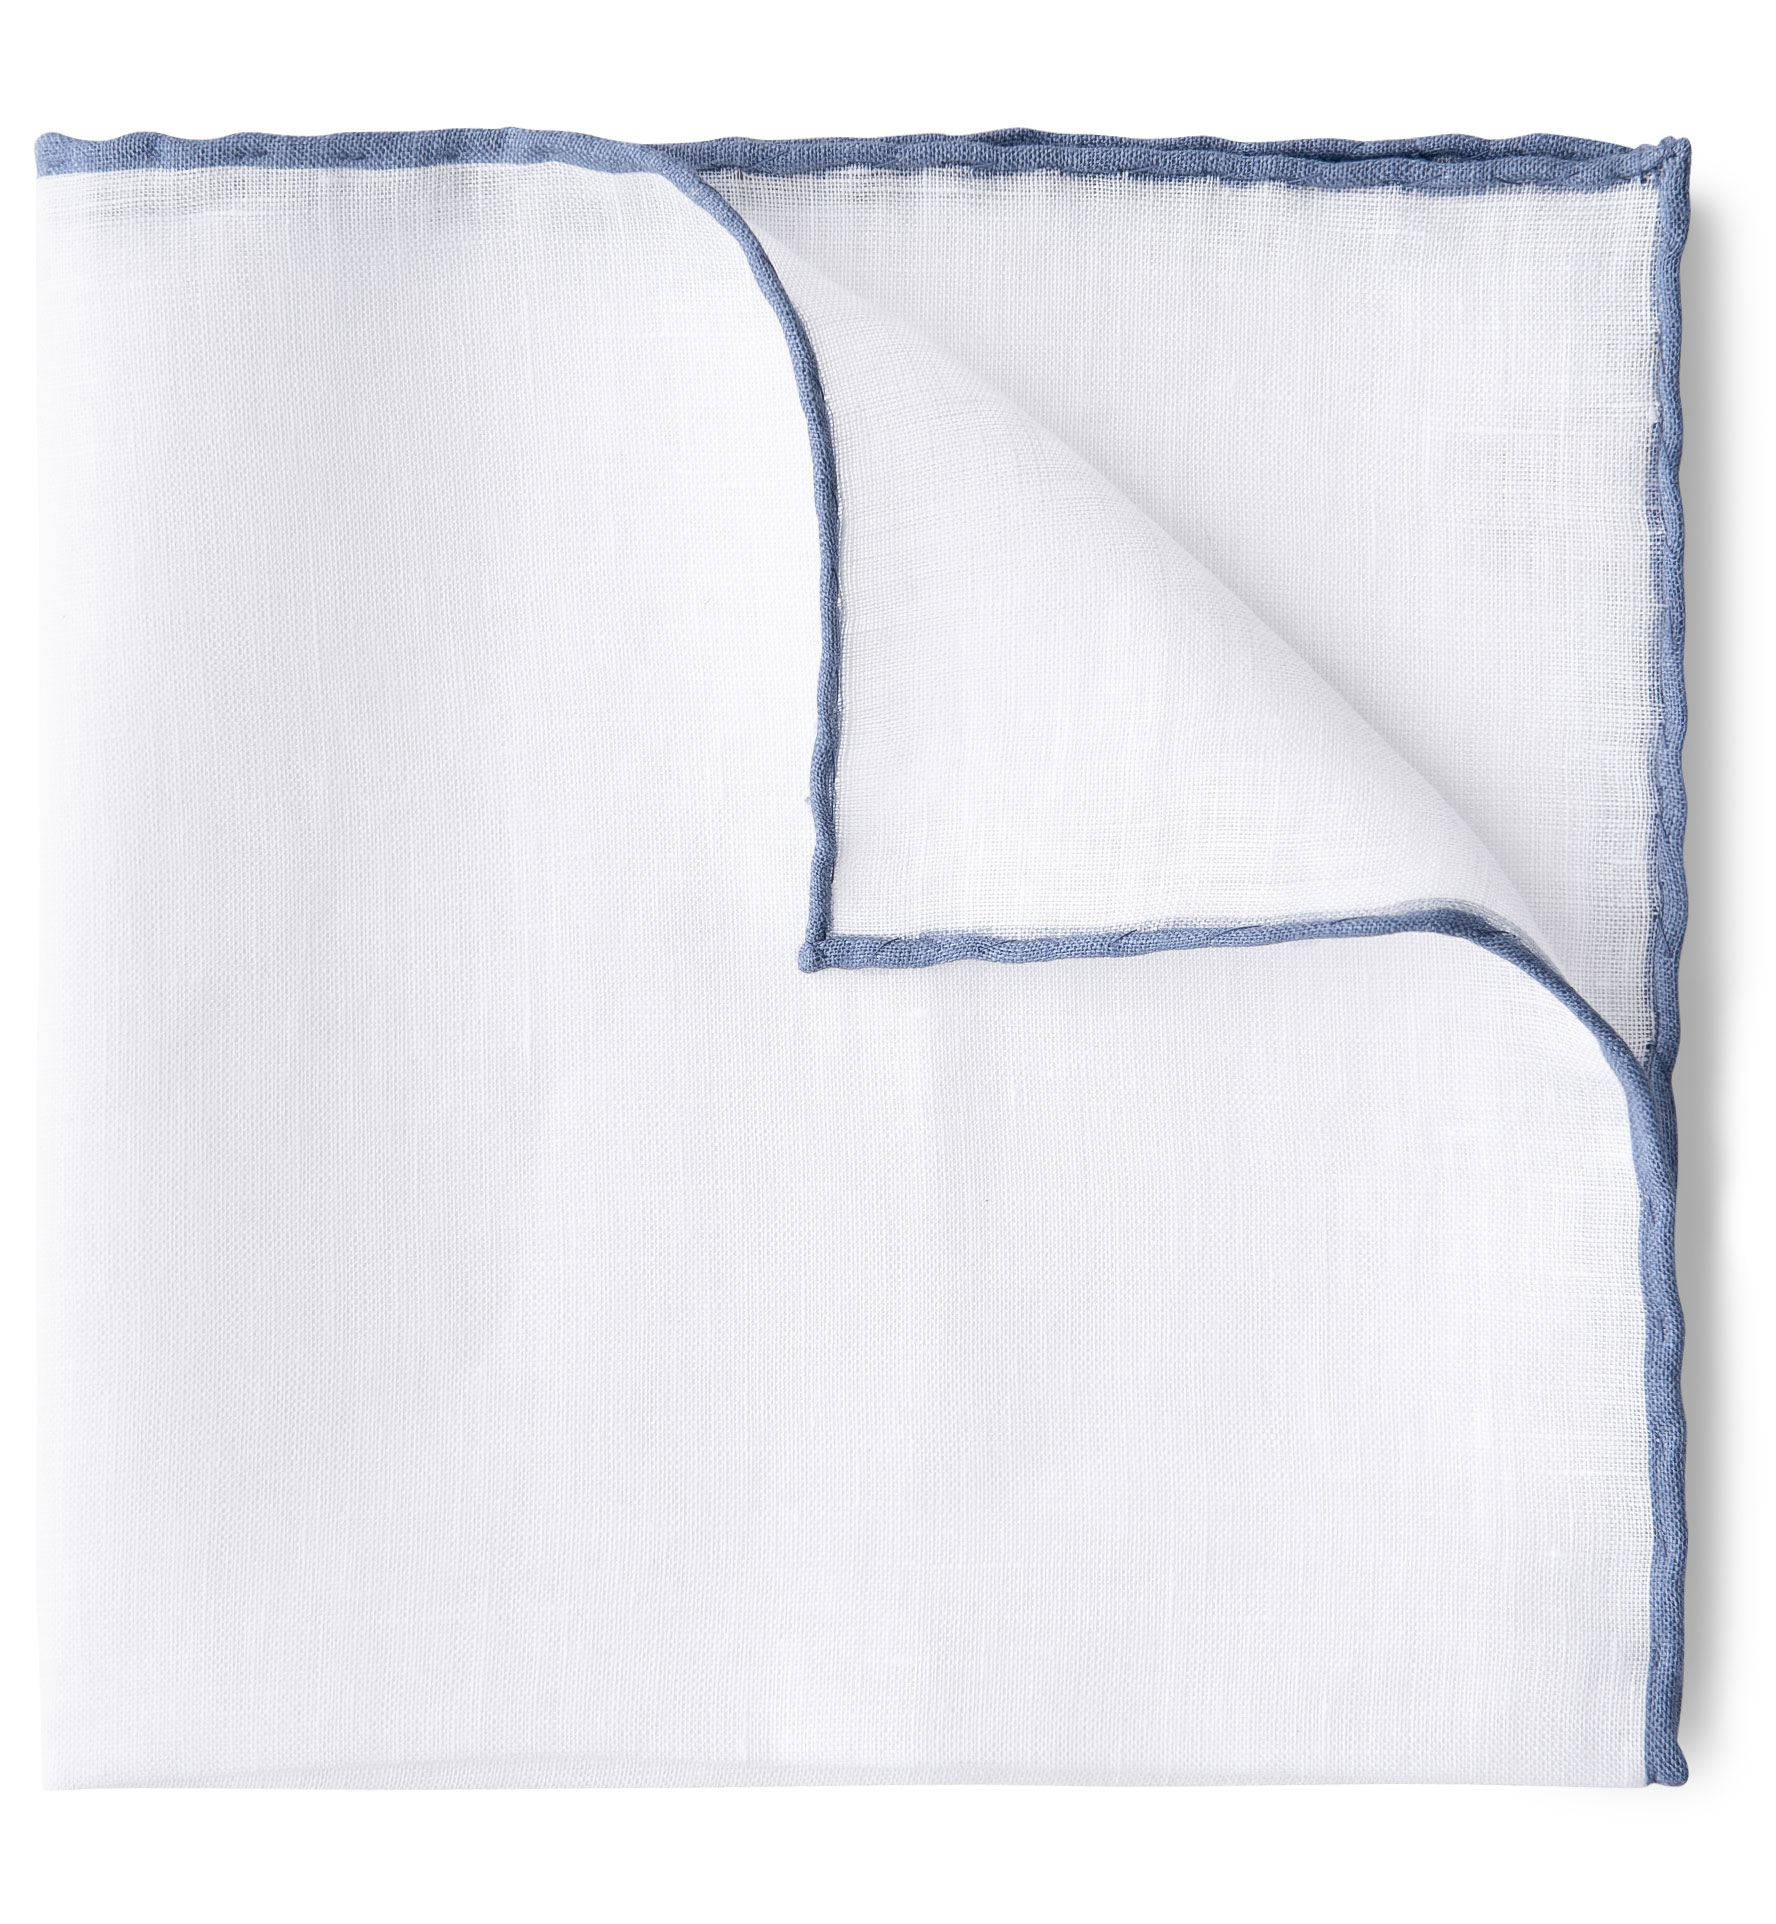 Zoom Image of White with Light Blue Tipping Linen Pocket Square